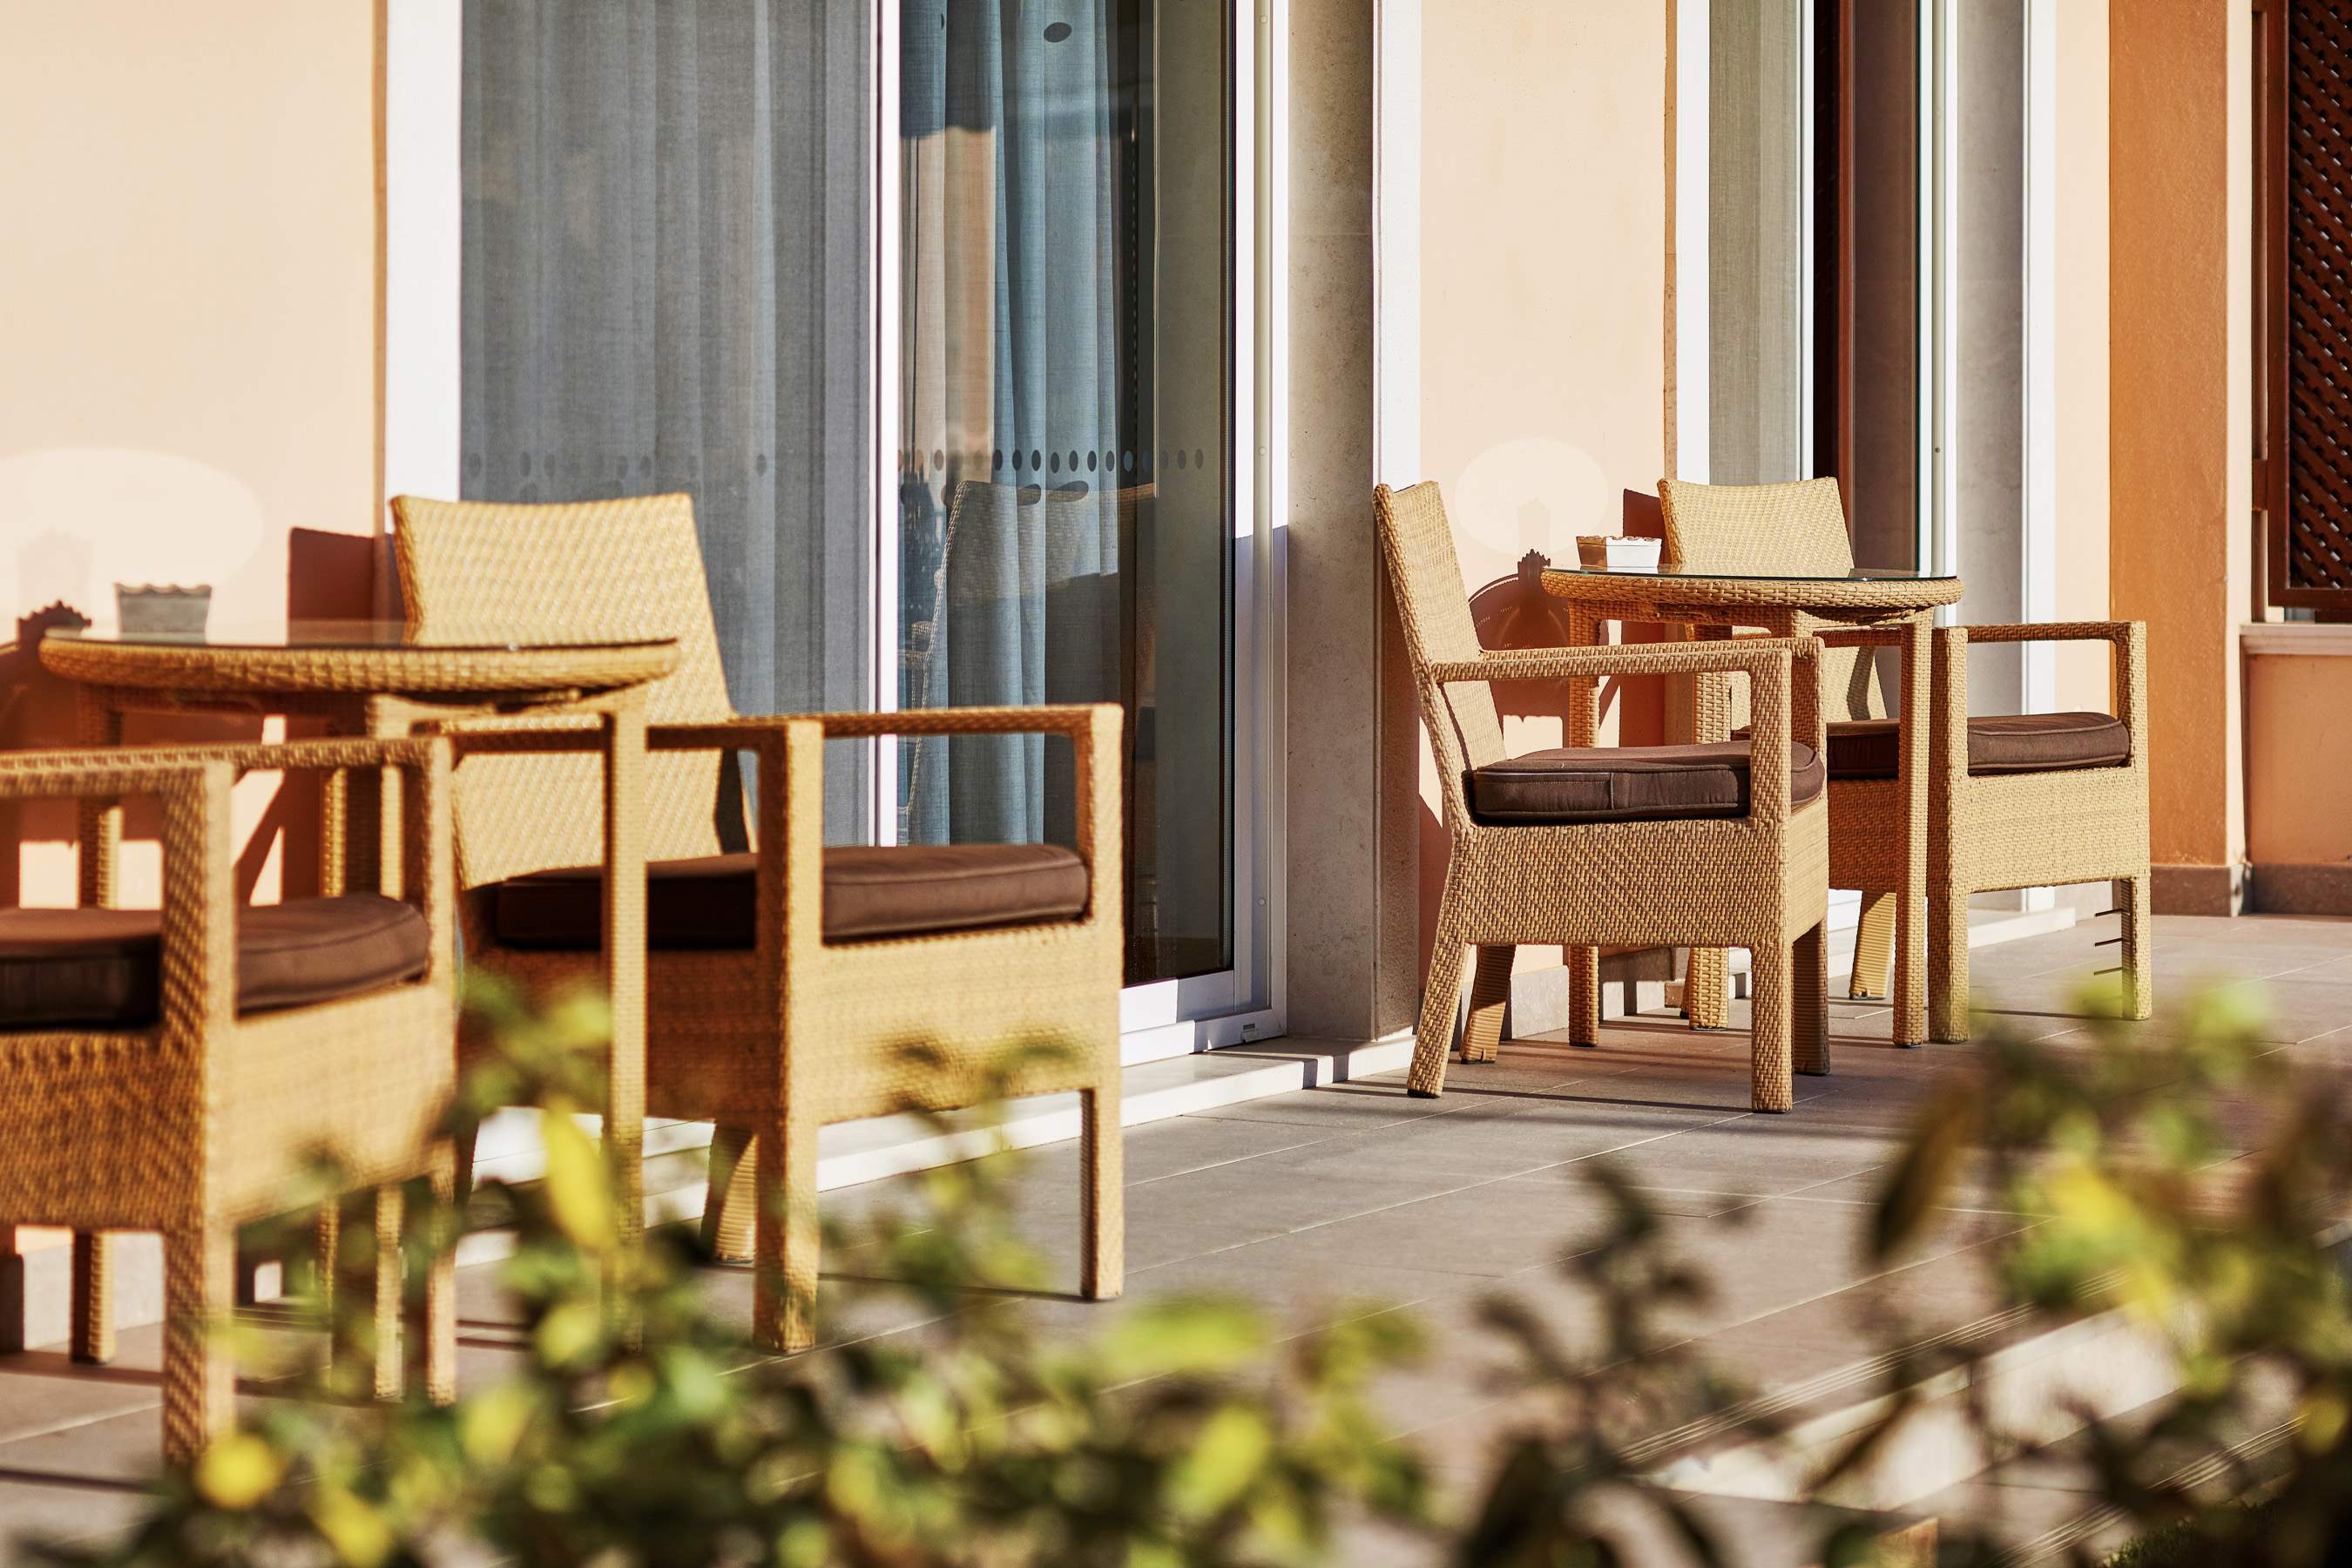 Wyndham Grand Algarve 2 Bedroom, Deluxe Family Suite, Pool Side, Room Only, 2 bedroom apartment in Wyndham Grand Algarve, Algarve Photo #29